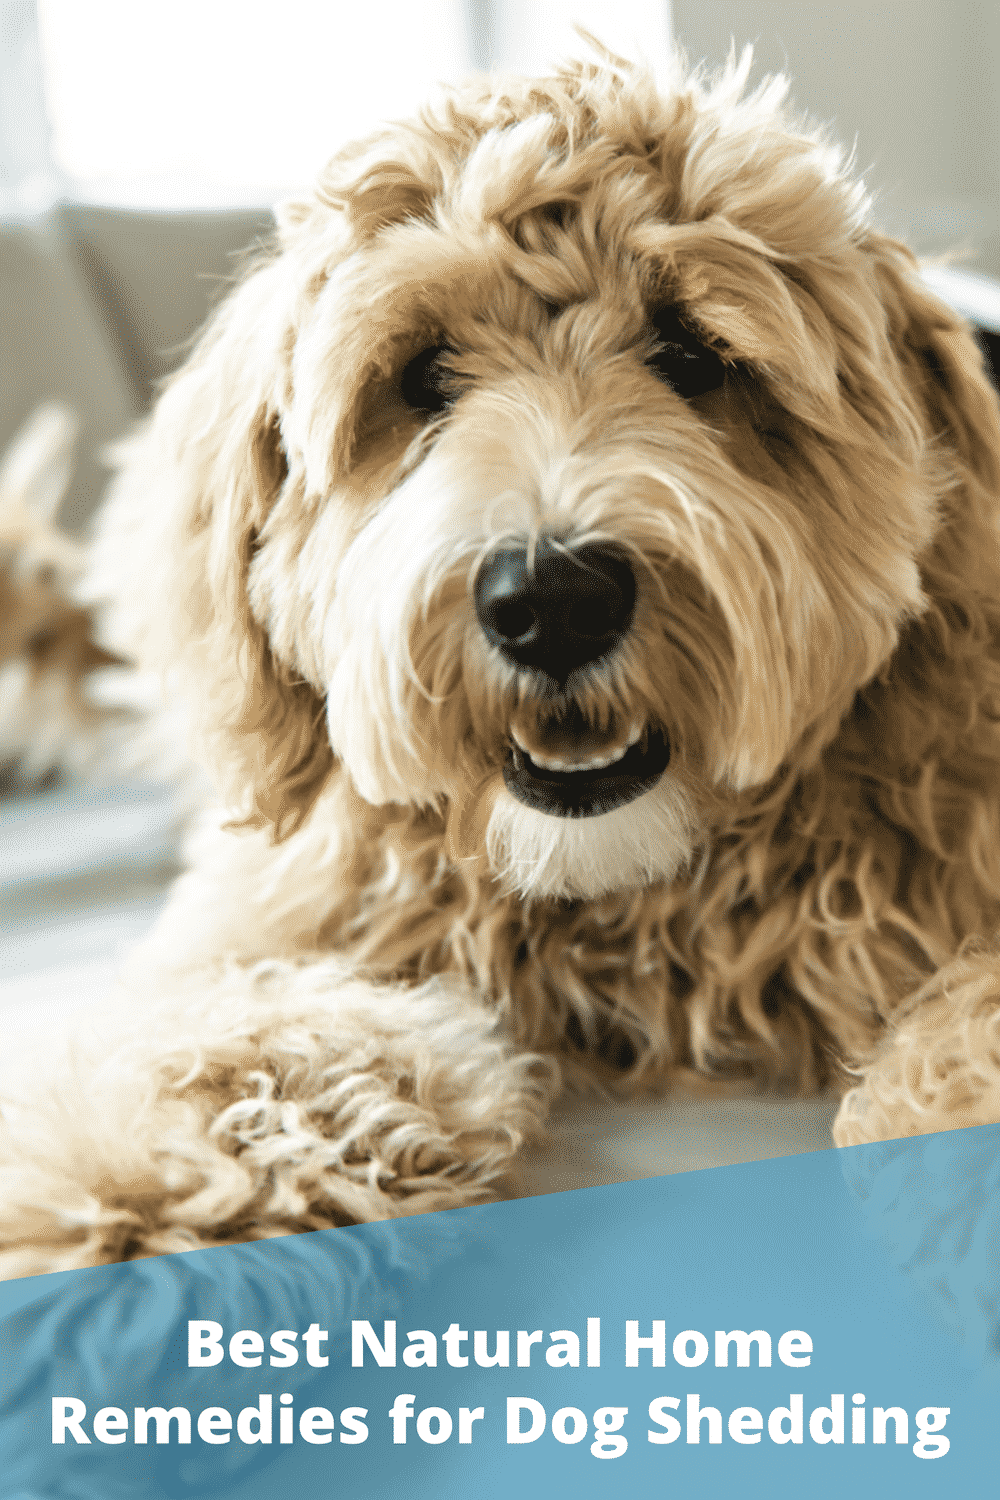 6 Natural Home Remedies for Reducing Dog Shedding